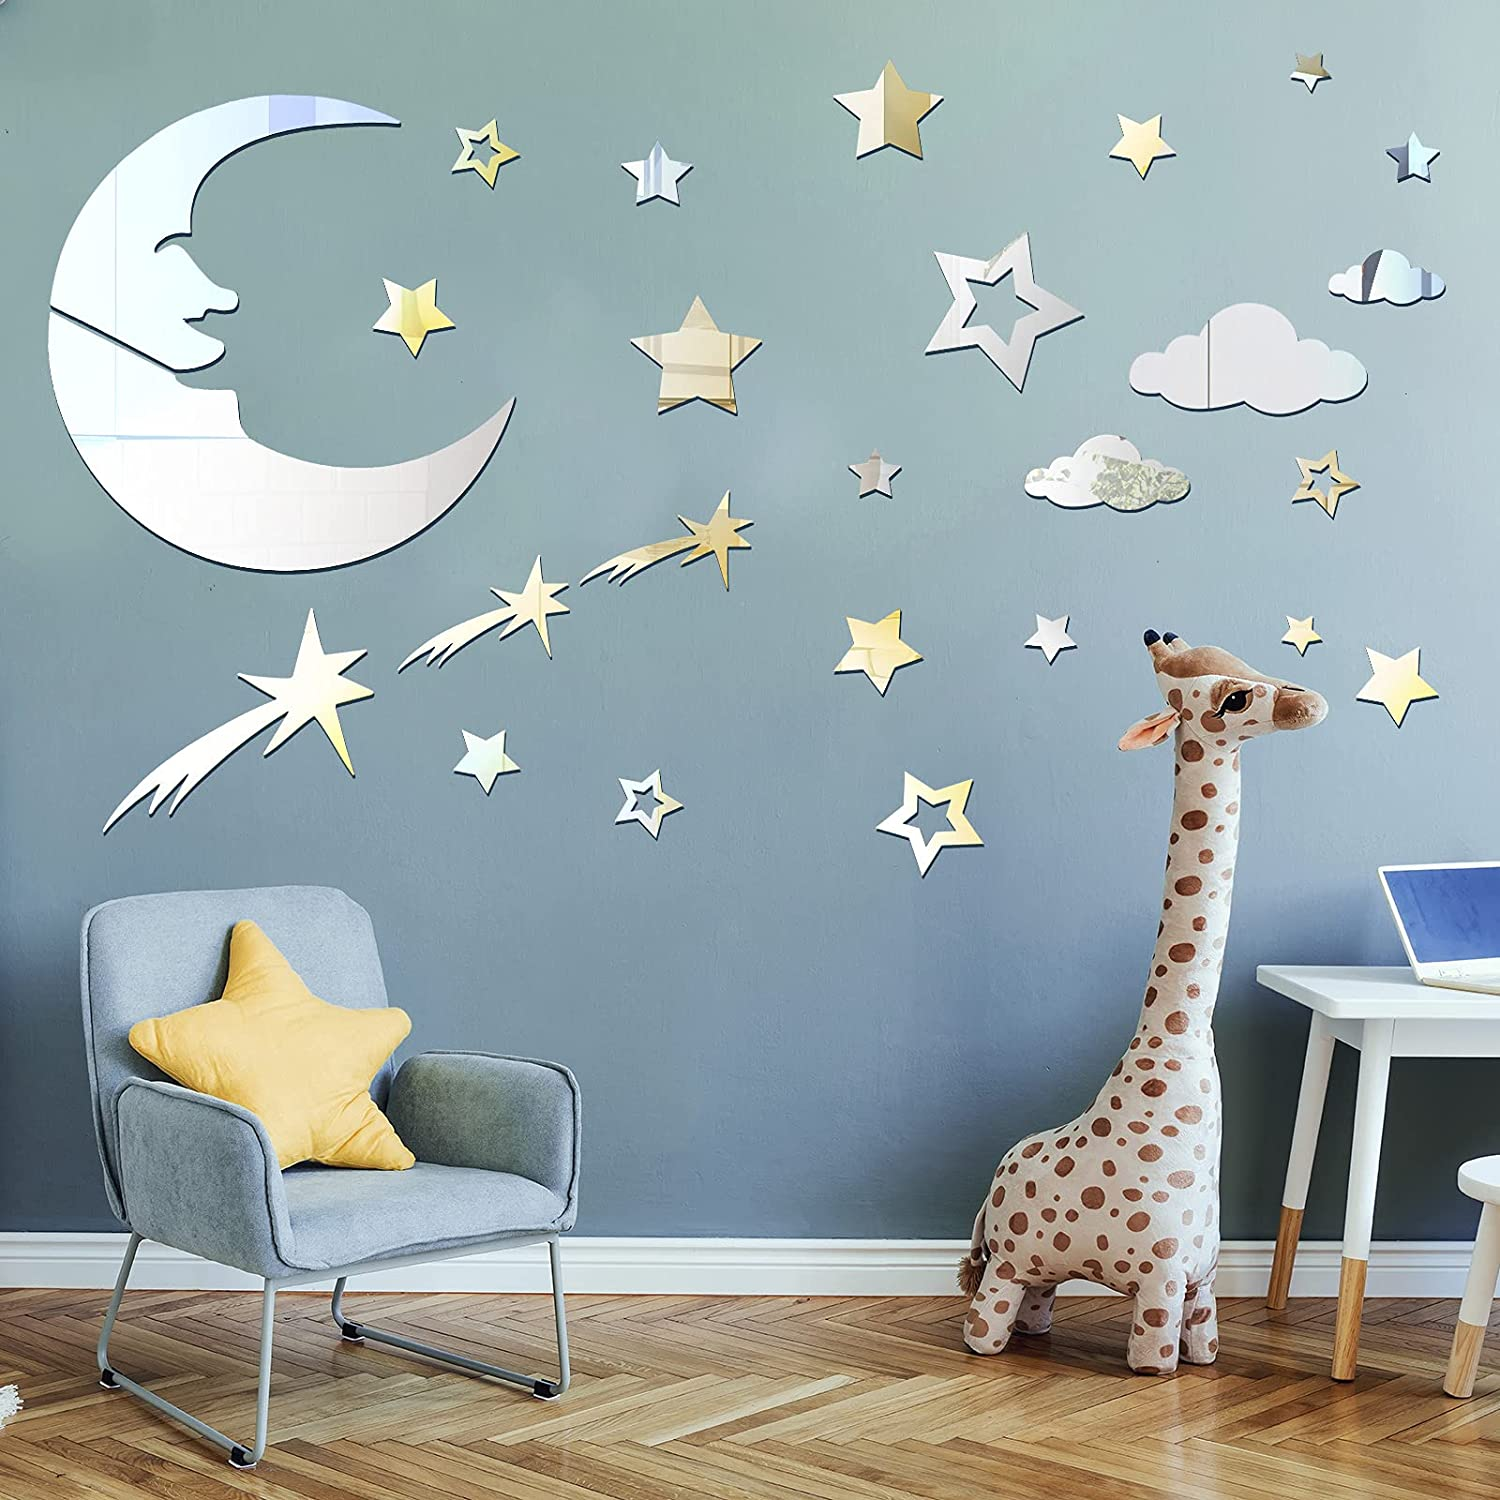 82 Pieces Moon and Stars Mirror Decals Removable 3D Acrylic Mirror Stickers Moon and Stars Wall Stickers Home Decor for Living Room Kids' Room Nursery Decoration